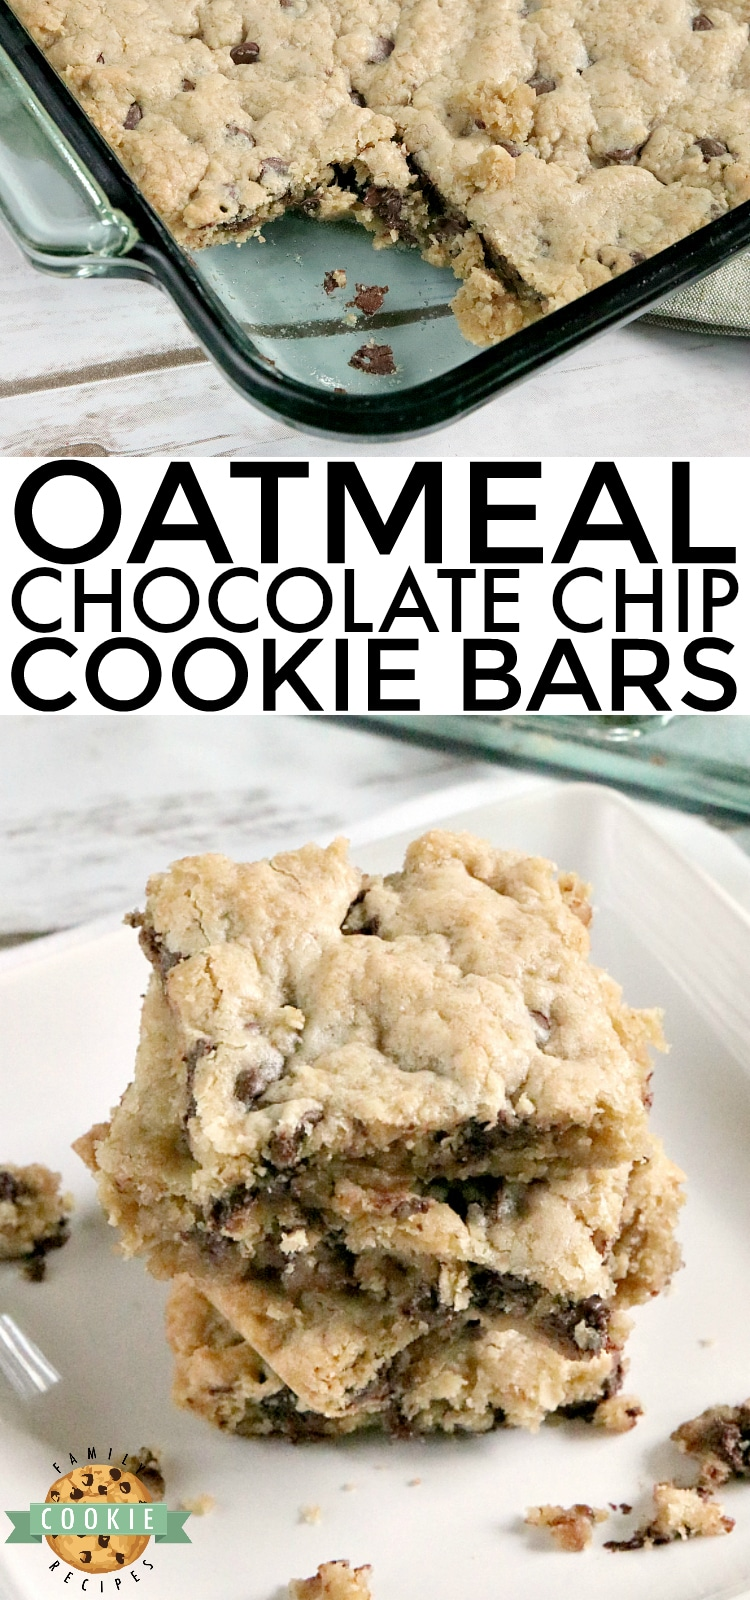 Oatmeal Chocolate Chip Cookie Bars are soft, chewy and easy to make when you don't have time to scoop individual cookies! This delicious cookie bar recipe is filled with oats and chocolate chips and comes together in just a few minutes. via @familycookierecipes